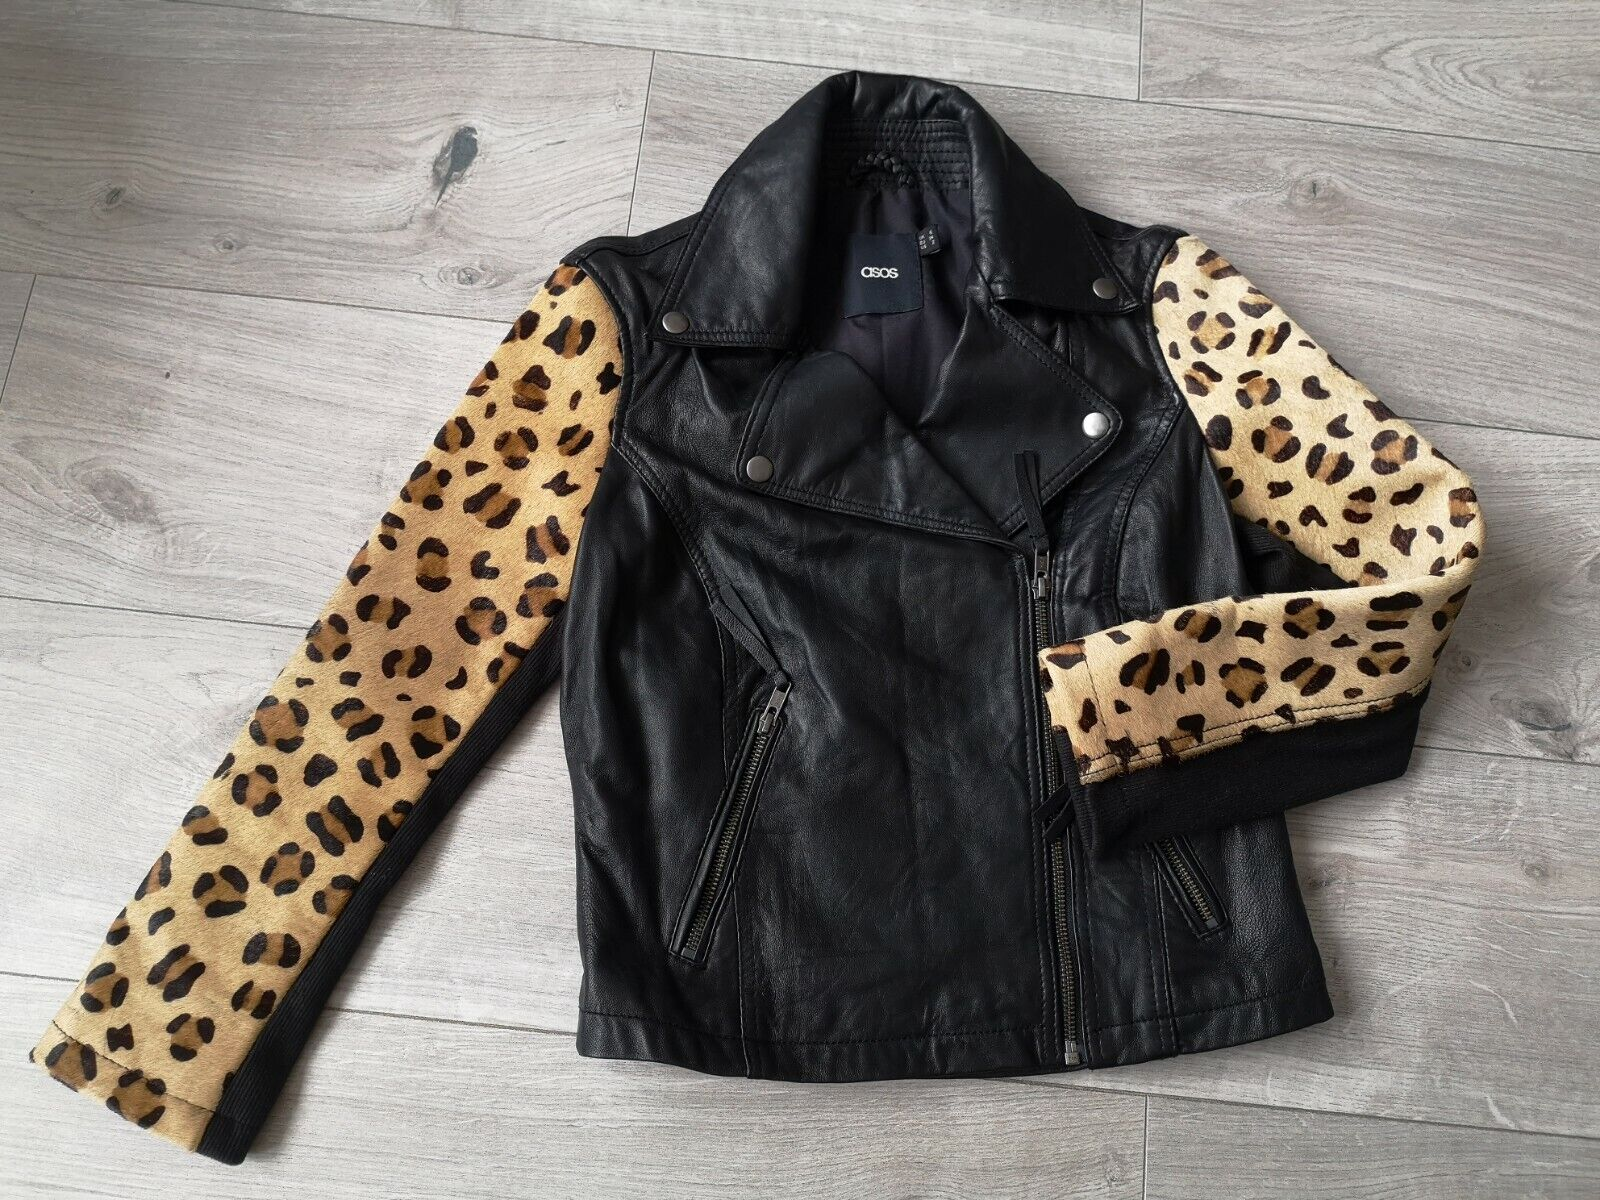 ASOS black Leather Jacket Leopard Print Sleeves size UK 6 Excellent Condition